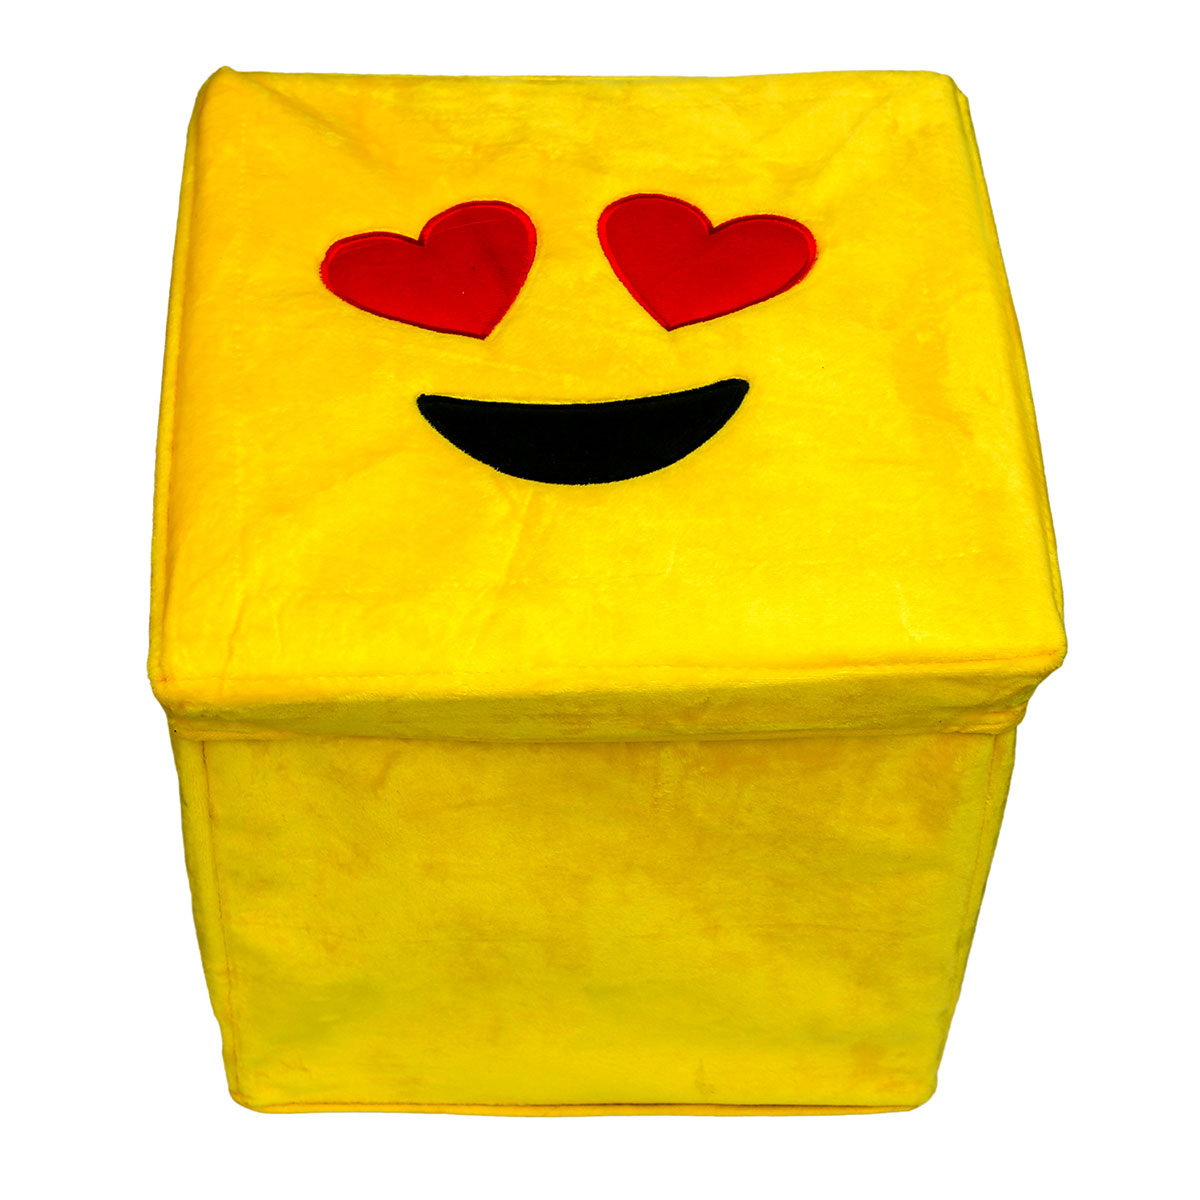 Art Decor Klapphocker Emoticon Plschbox Smiley Mit Herzaugen